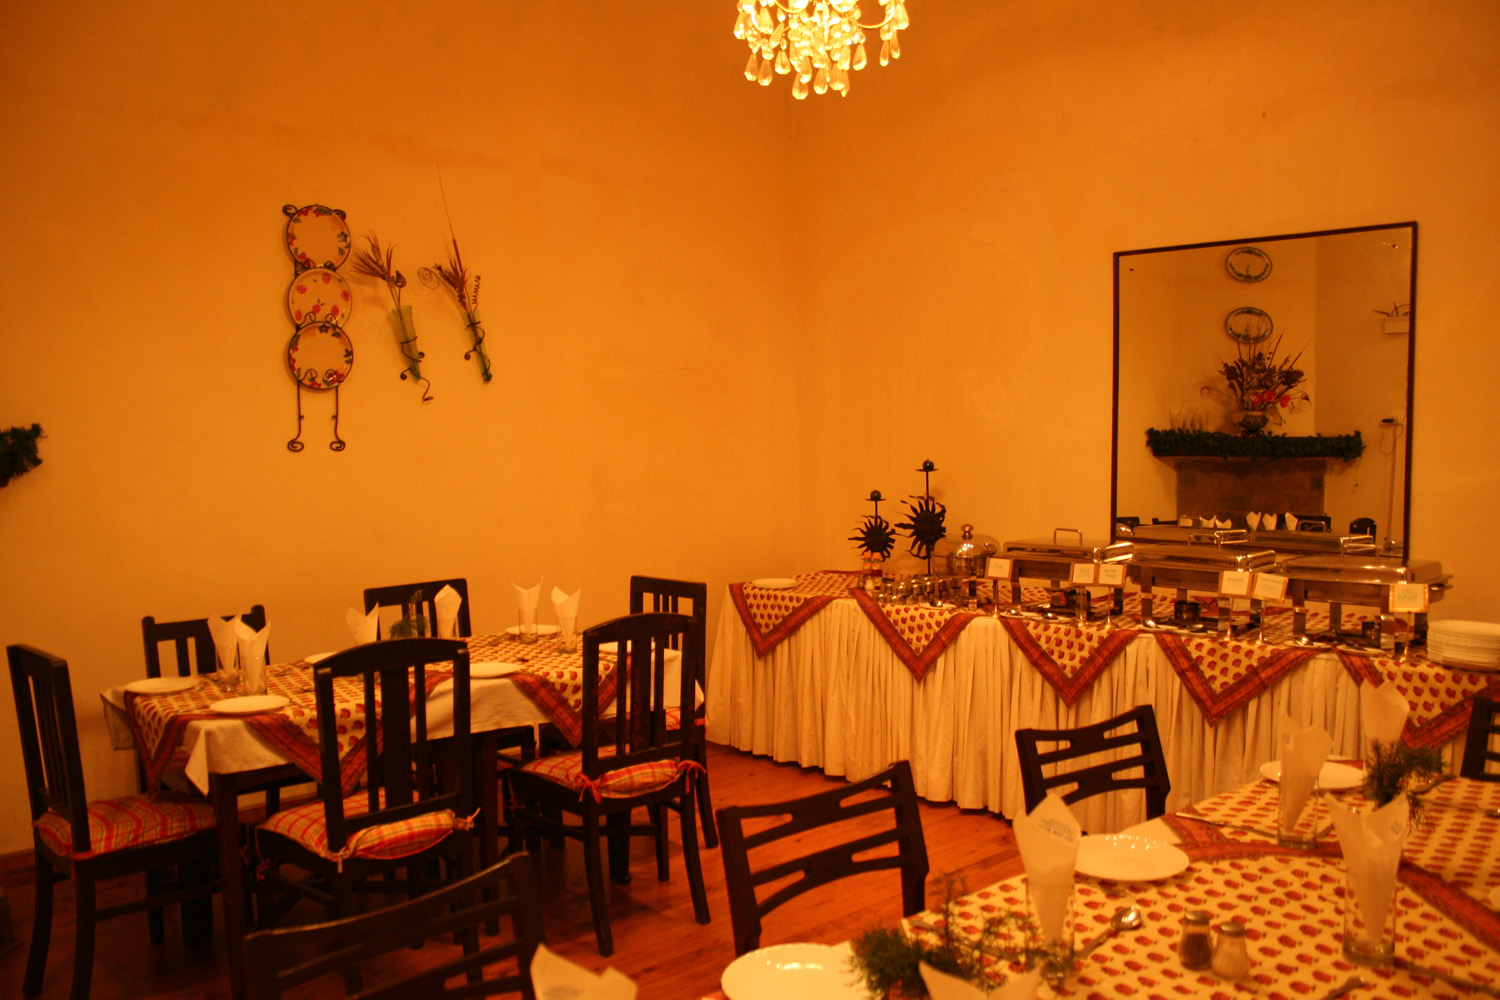 West View Hotel –Ranikhet Ranikhet Restaurant West View Hotel Ranikhet